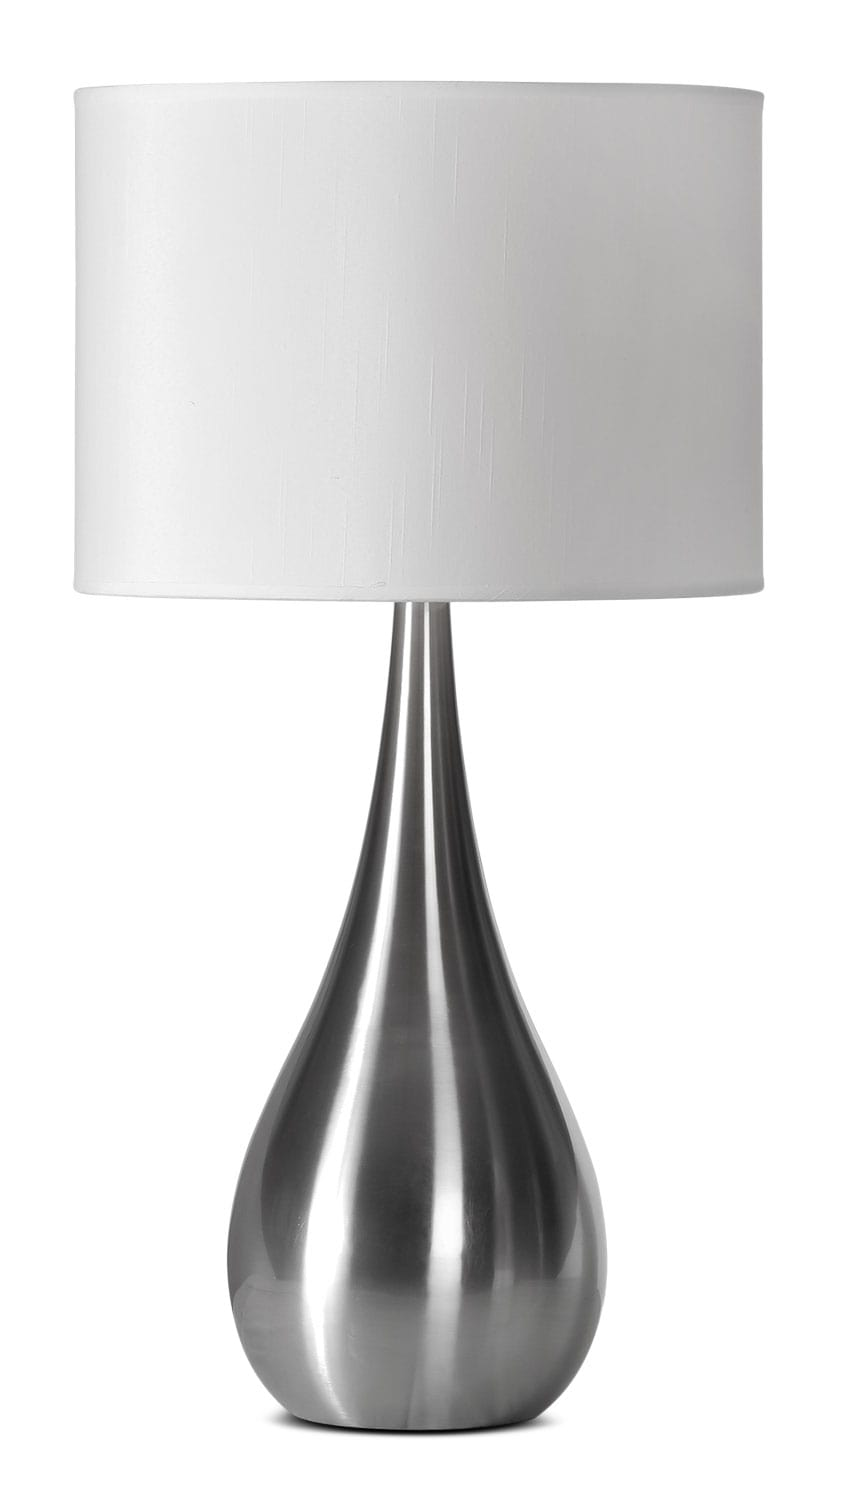 "Accent and Occasional Furniture - Aspen 26"" Table Lamp - Stainless Steel"